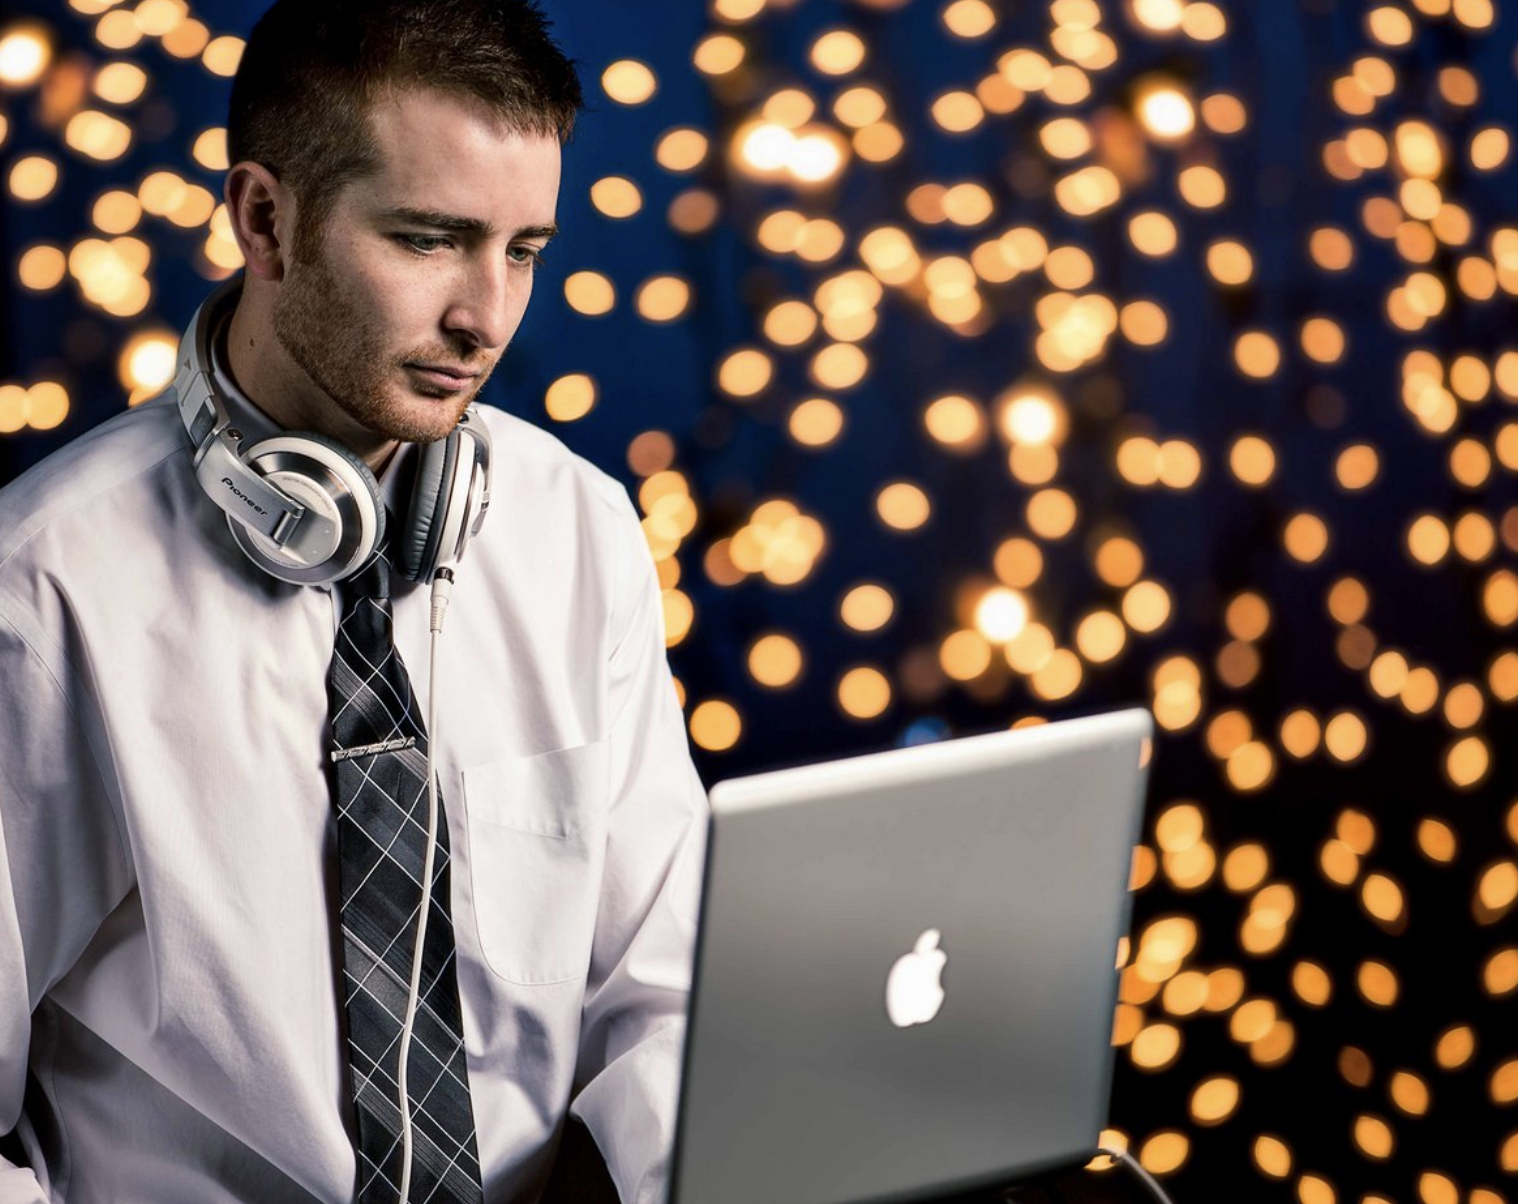 a DJ poses in front of a background full of string lights with a laptop and headphones to demonstrate one of the tips for great branding photos